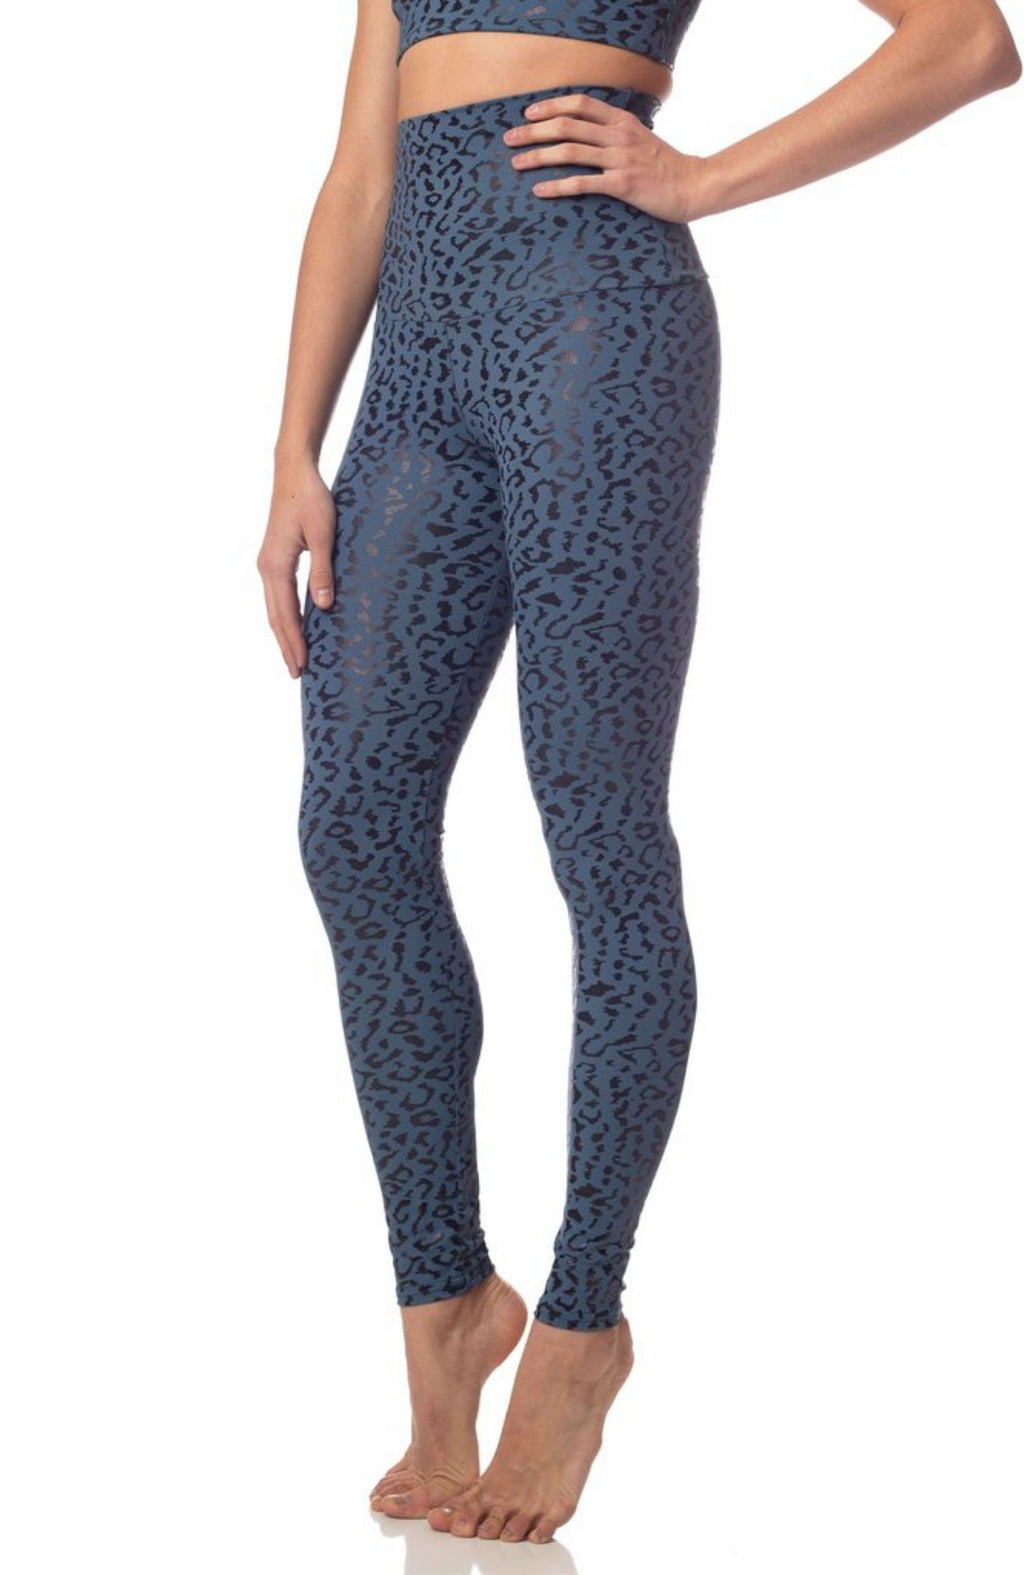 High waisted women's leopard leggings - ethically made